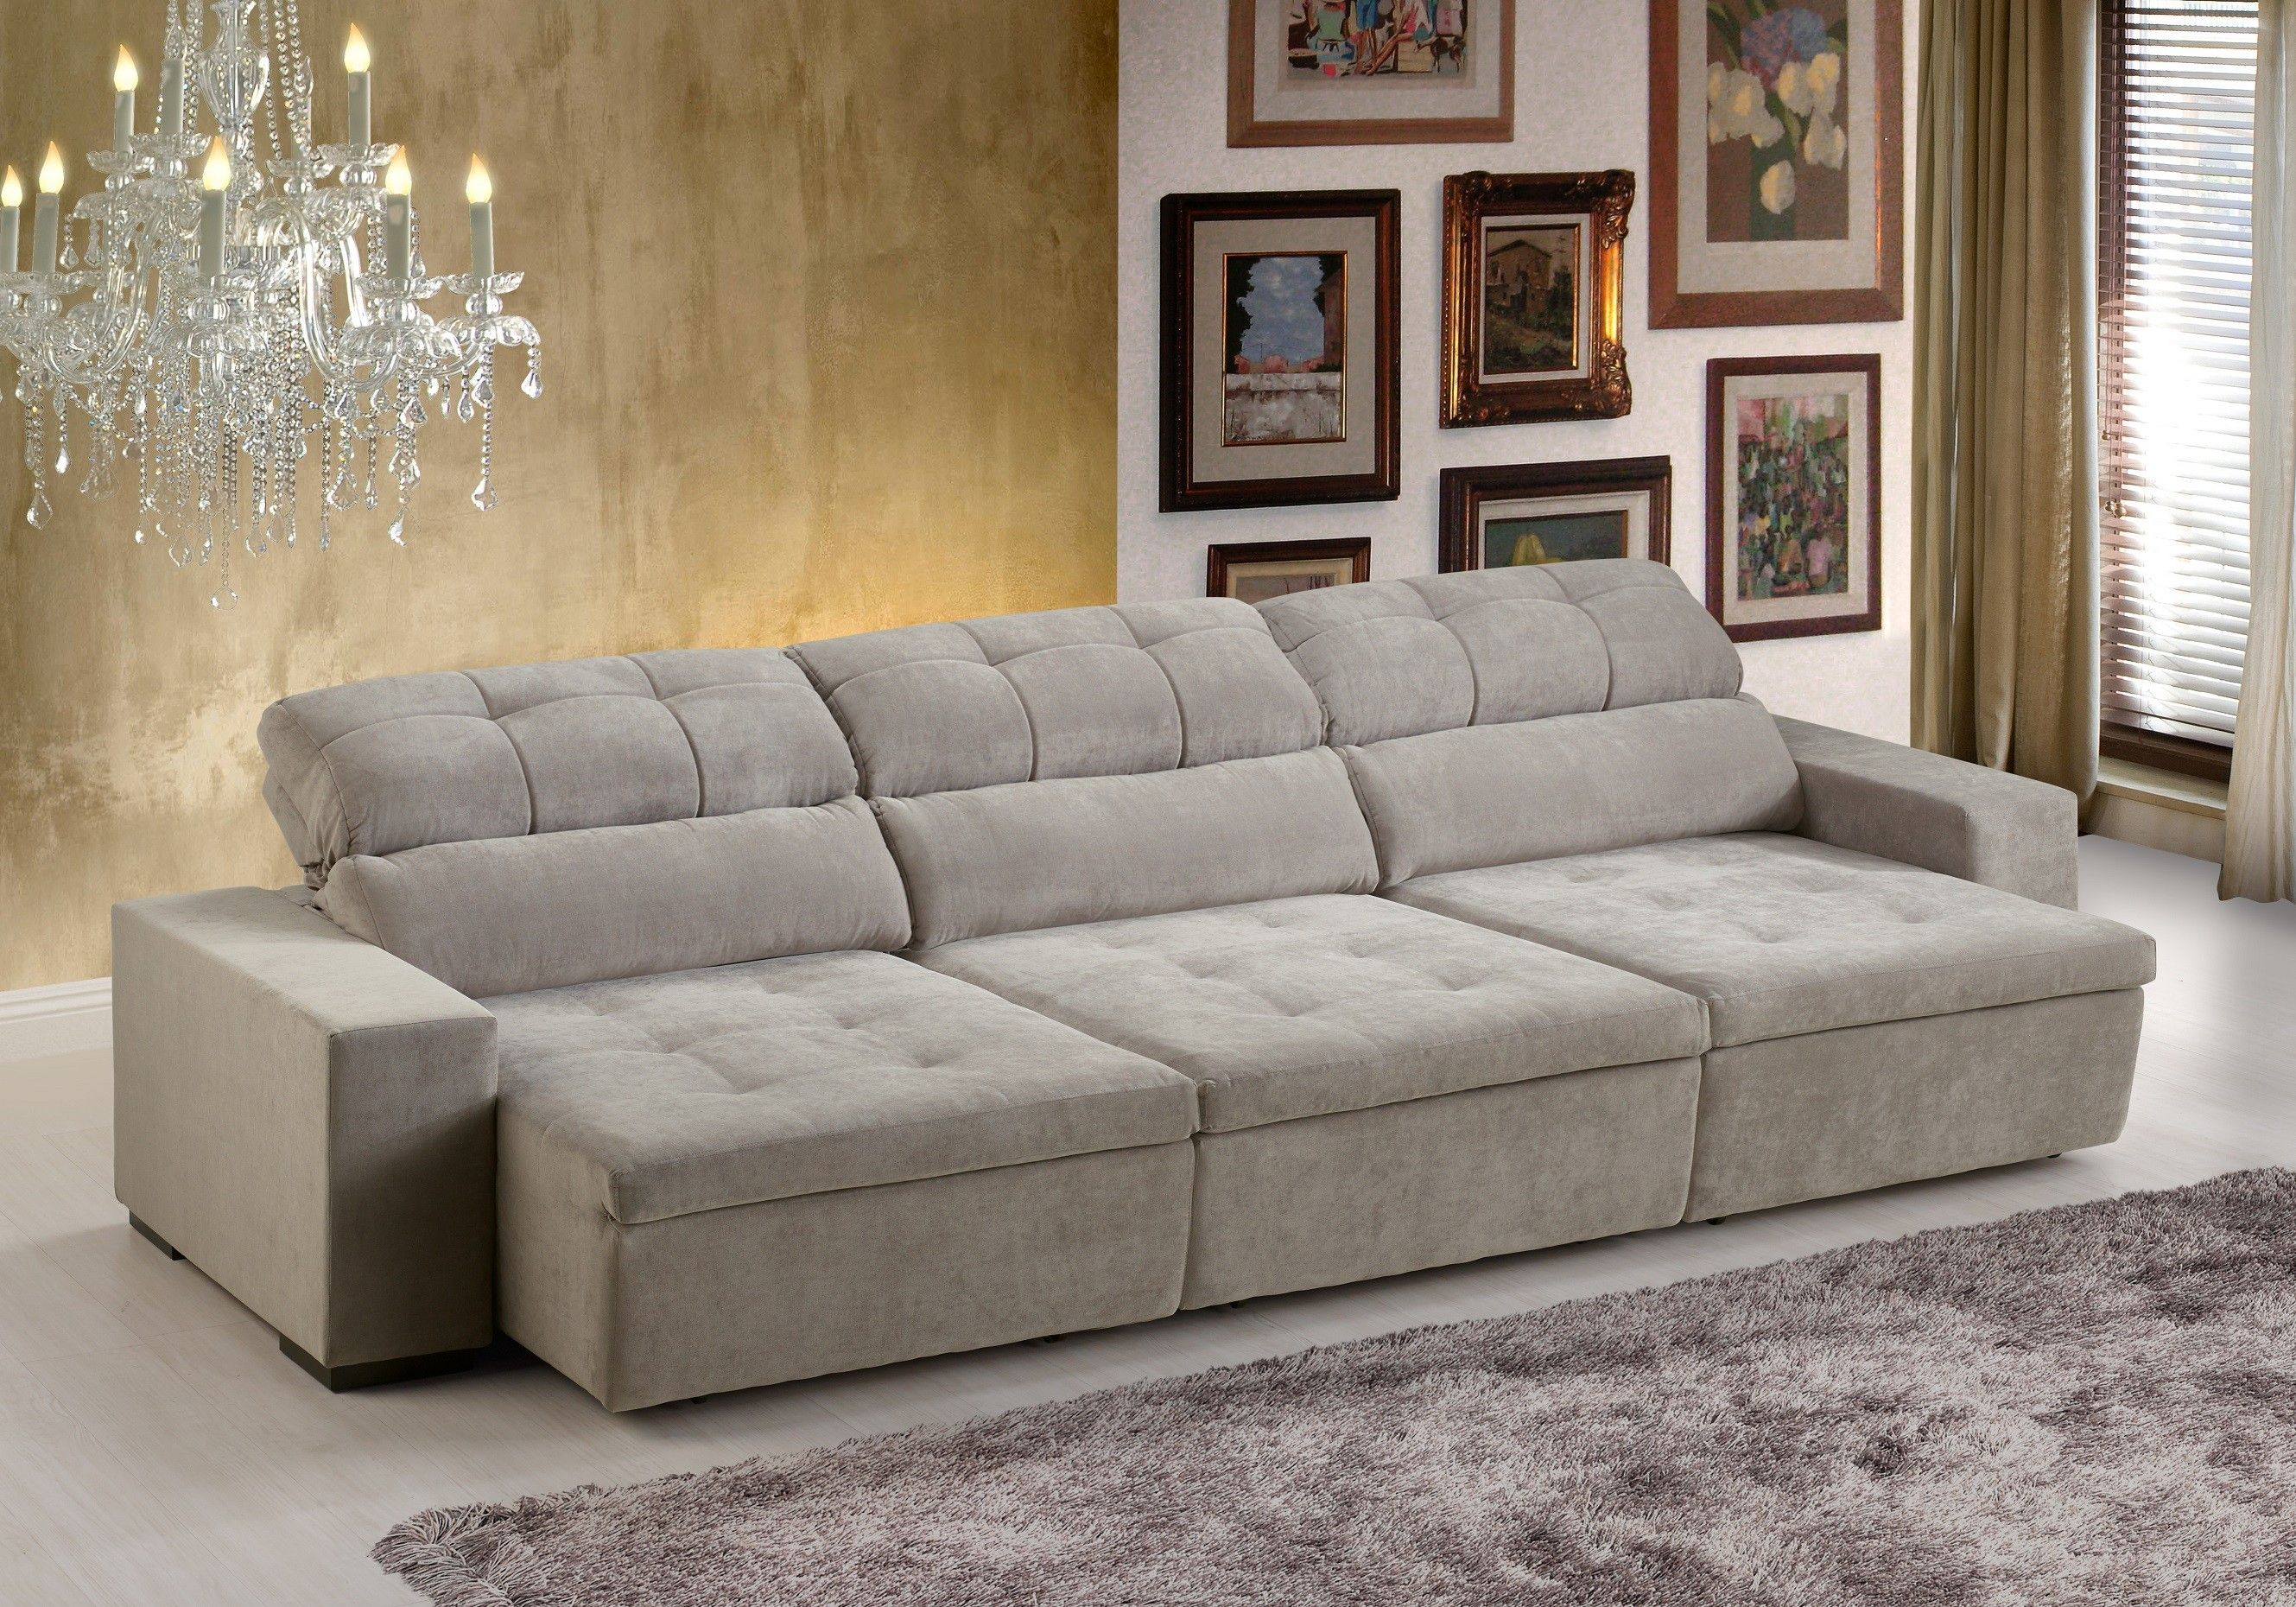 Sof london 5 lugares assento retr til e encosto for Sofa 03 lugares retratil e reclinavel